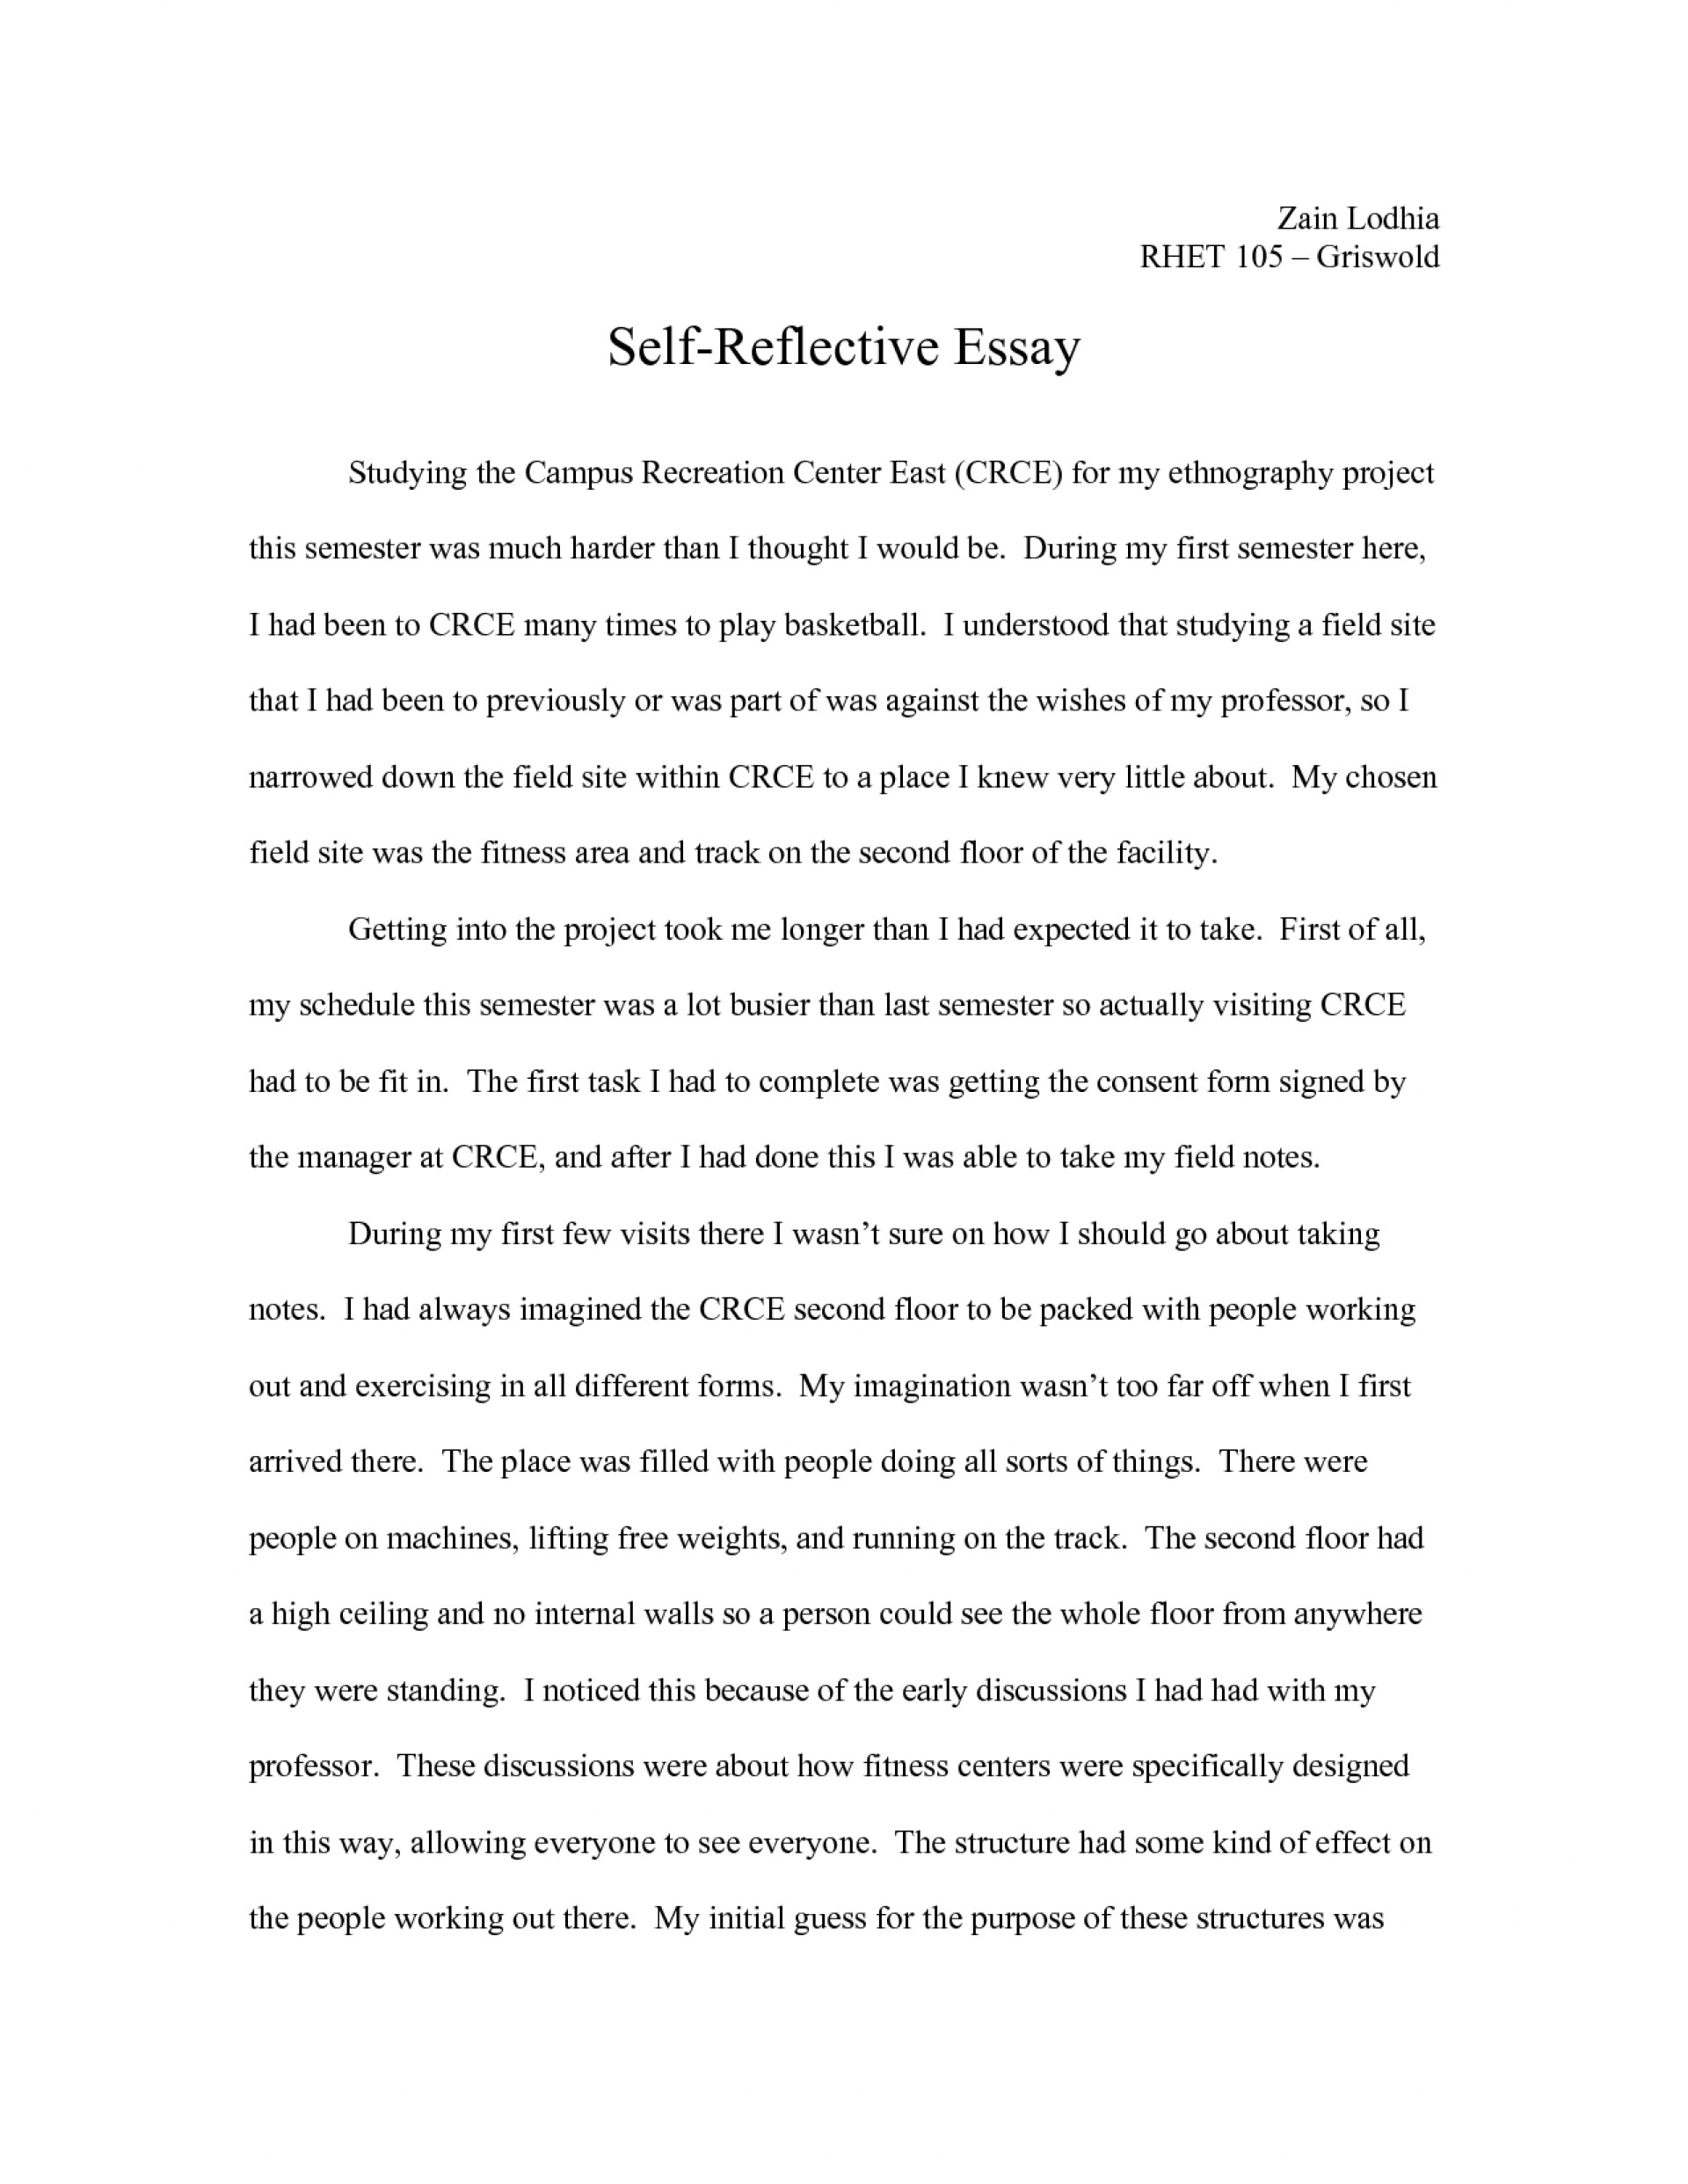 003 Qal0pwnf46 Reflective Essays Beautiful Essay Examples For Middle School Apa High 1920